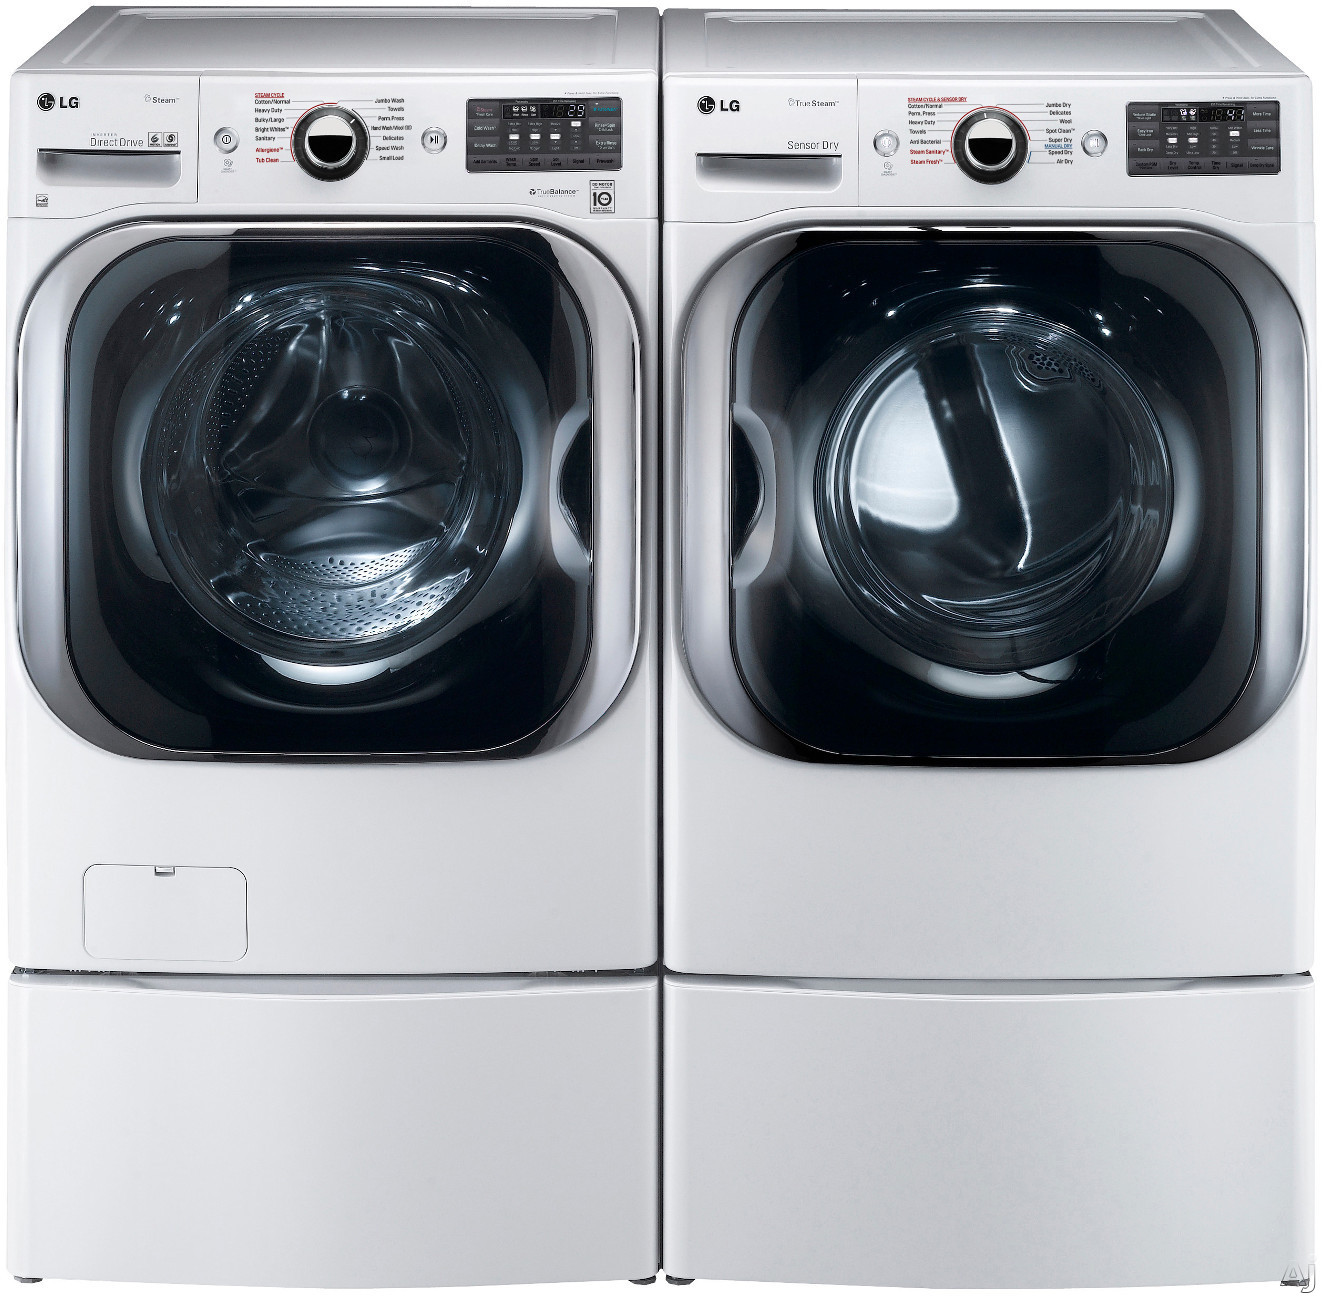 LG LGWADREW8105 Side-by-Side on Pedestals Washer & Dryer Set with Front Load Washer and Gas Dryer in White